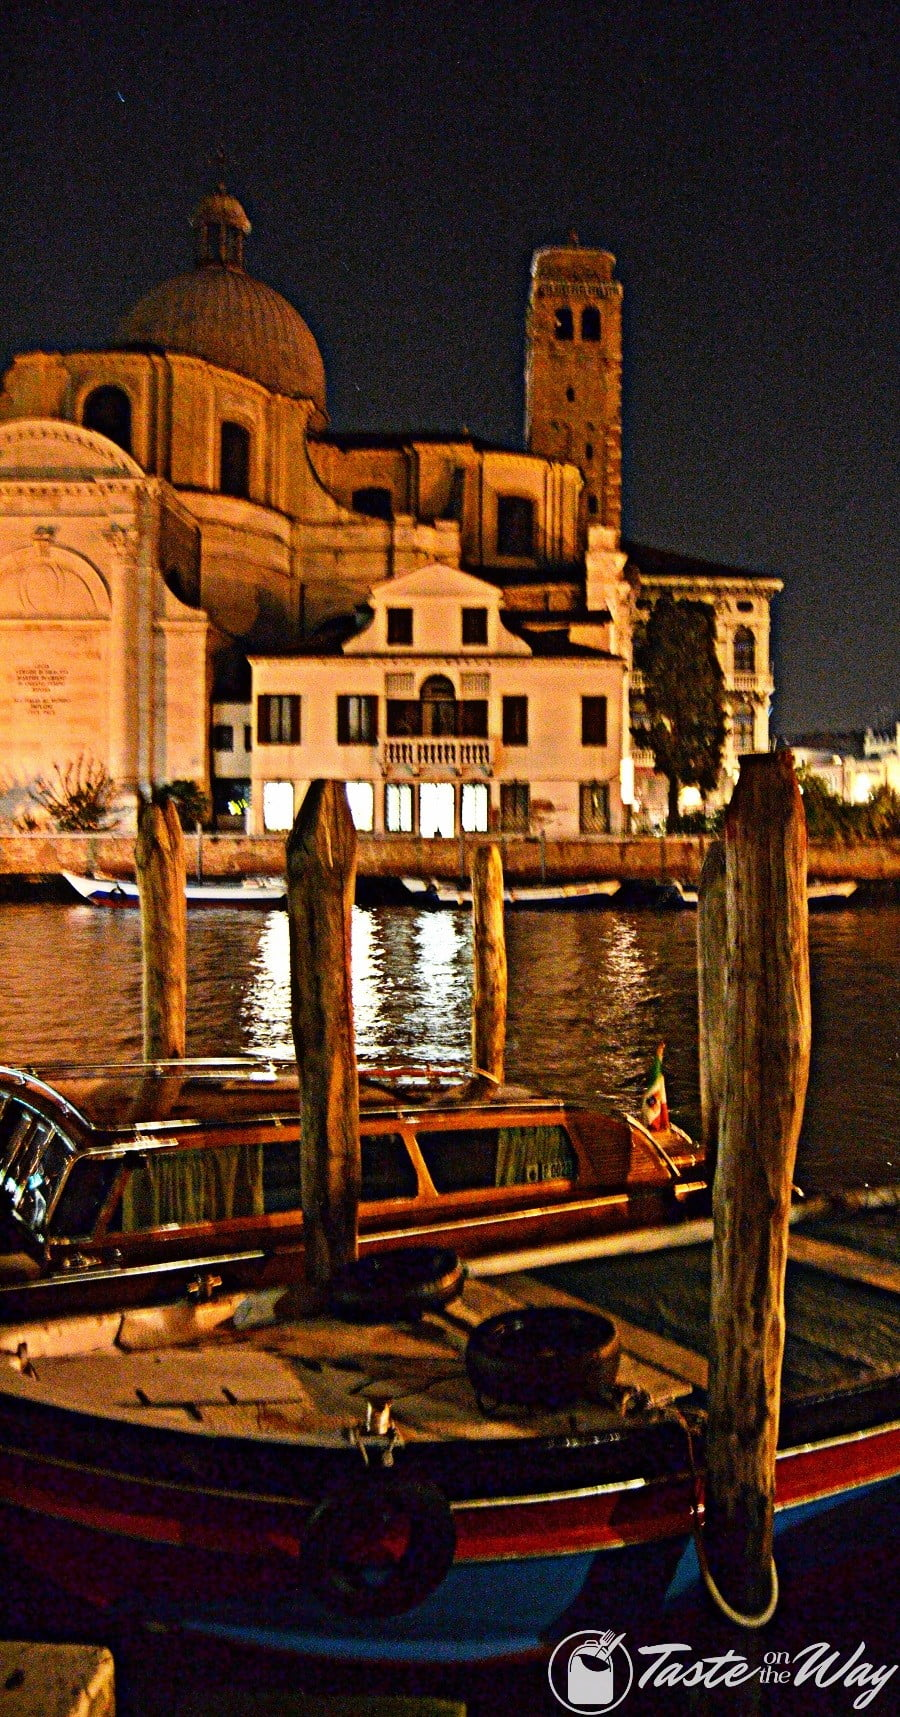 One of the top 10 fun #ThingsToDo in #Venice, #Italy is to discover the night life. Check out for more! #travel #photography @tasteontheway